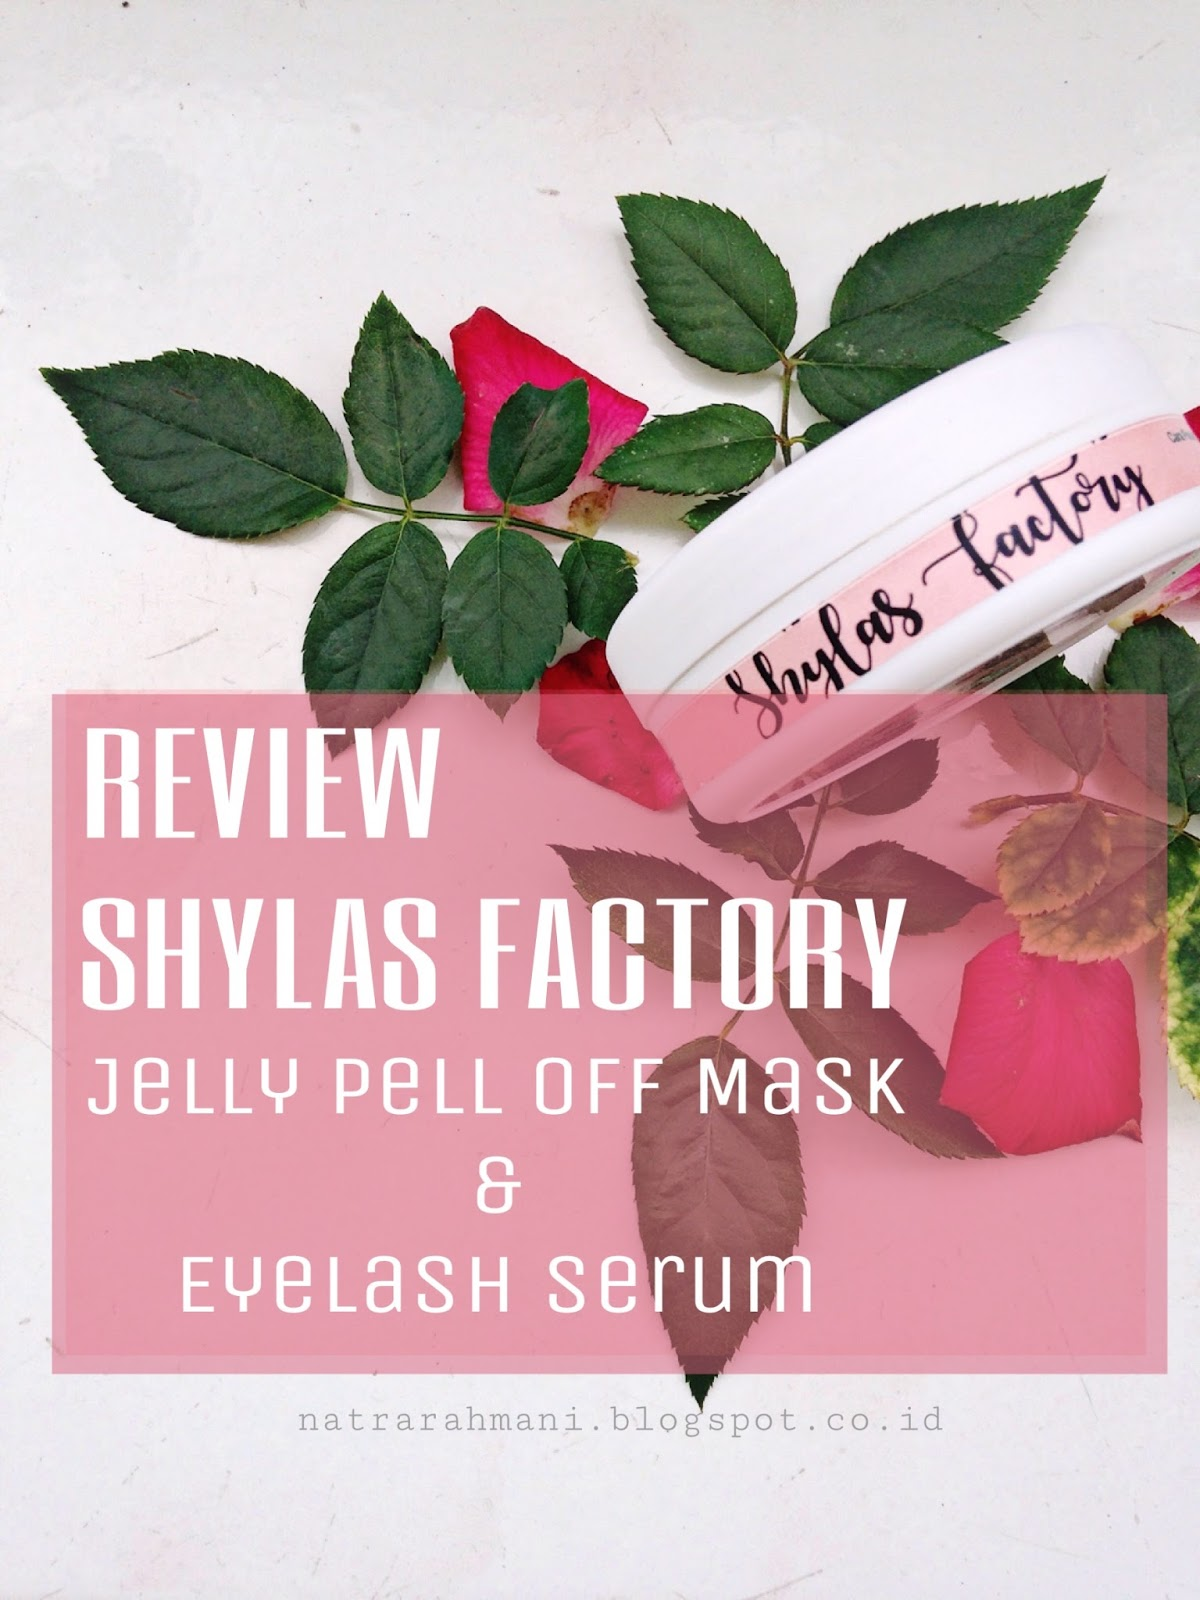 review-shylas-factory-kanaya-jelly-peel-off-mask-namaka-eyelash-serum